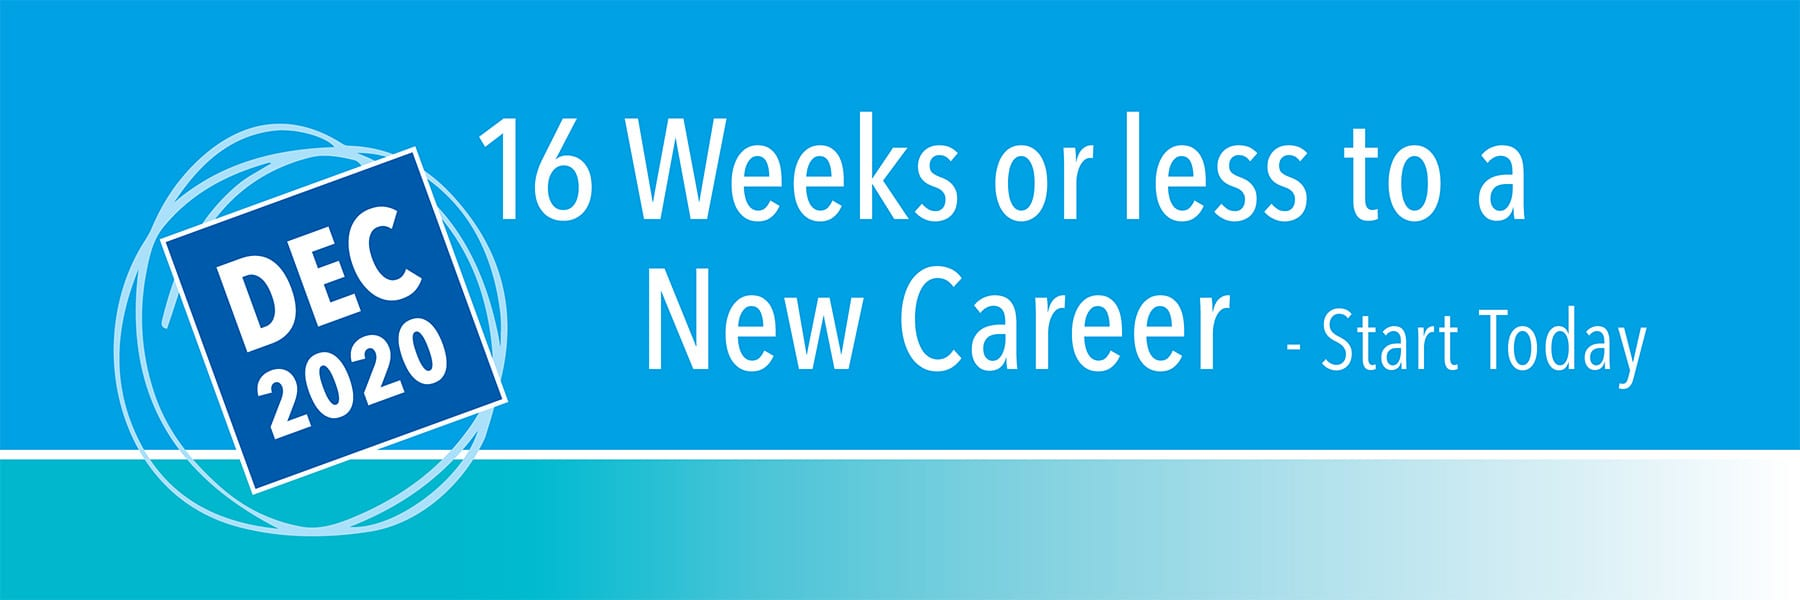 16 weeks or less to a new career. Start today